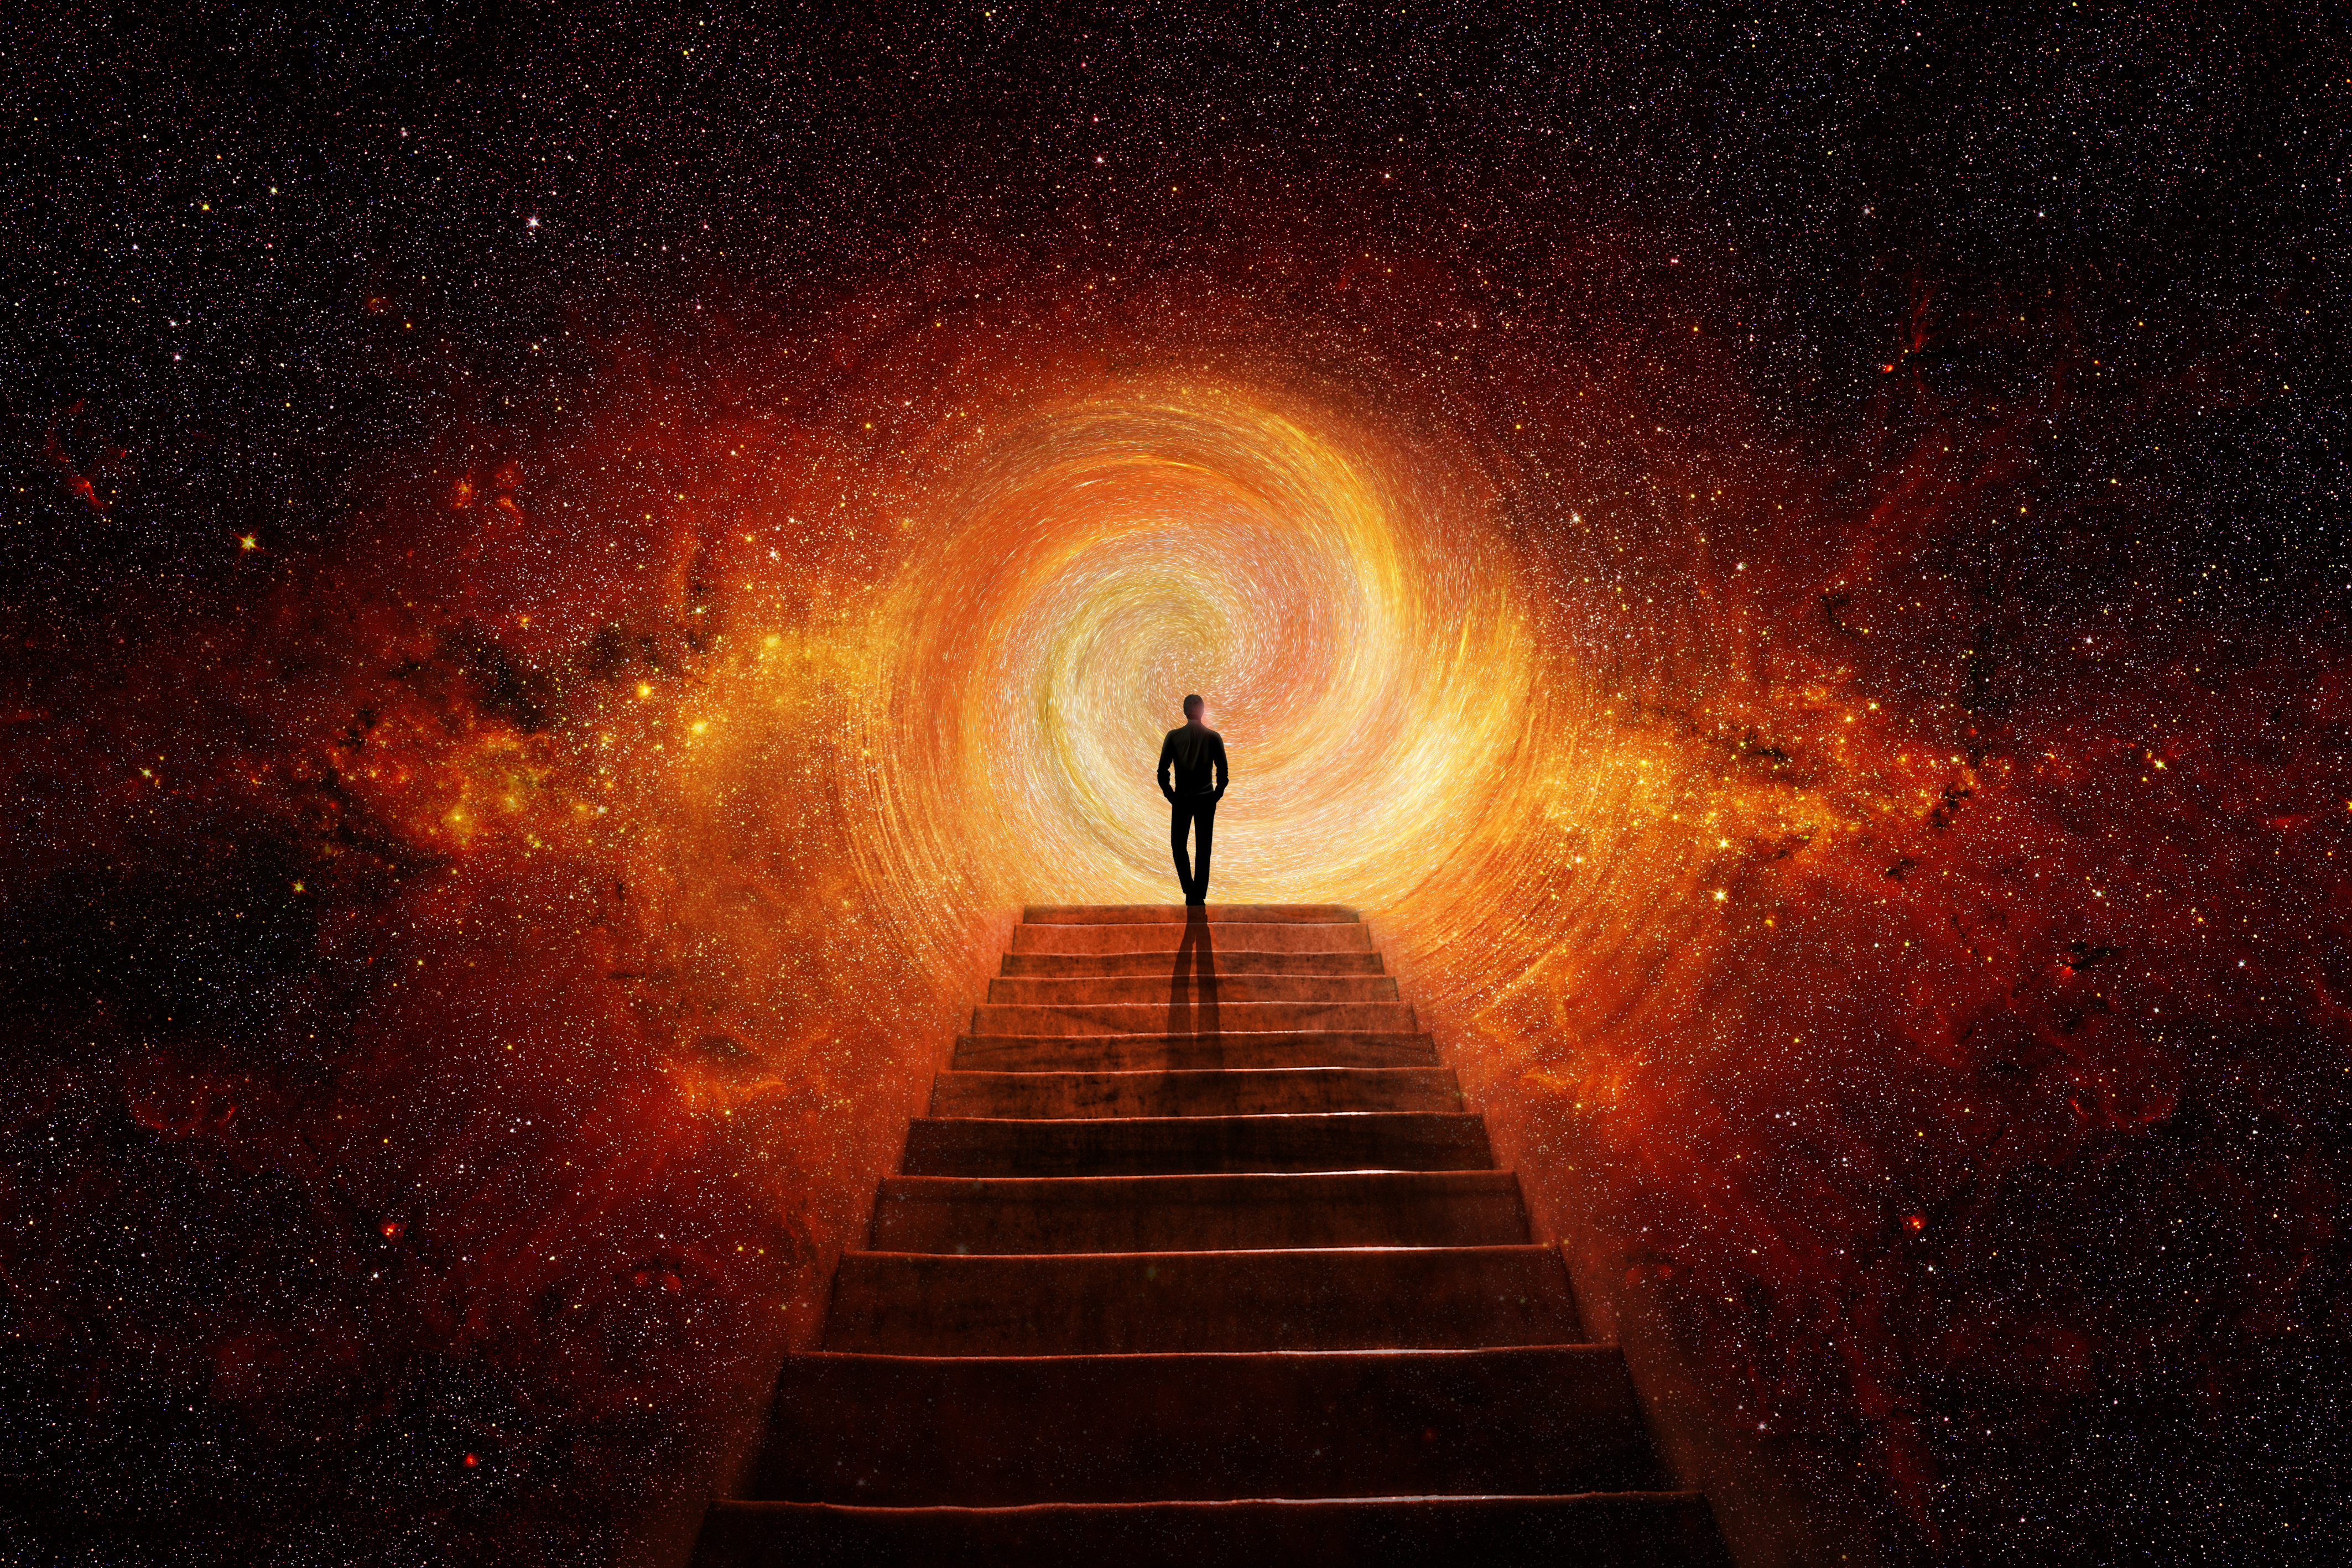 Why will your manifestation not become true? (An essay offering insights on manifestation, the law of attraction and true human possibilities).